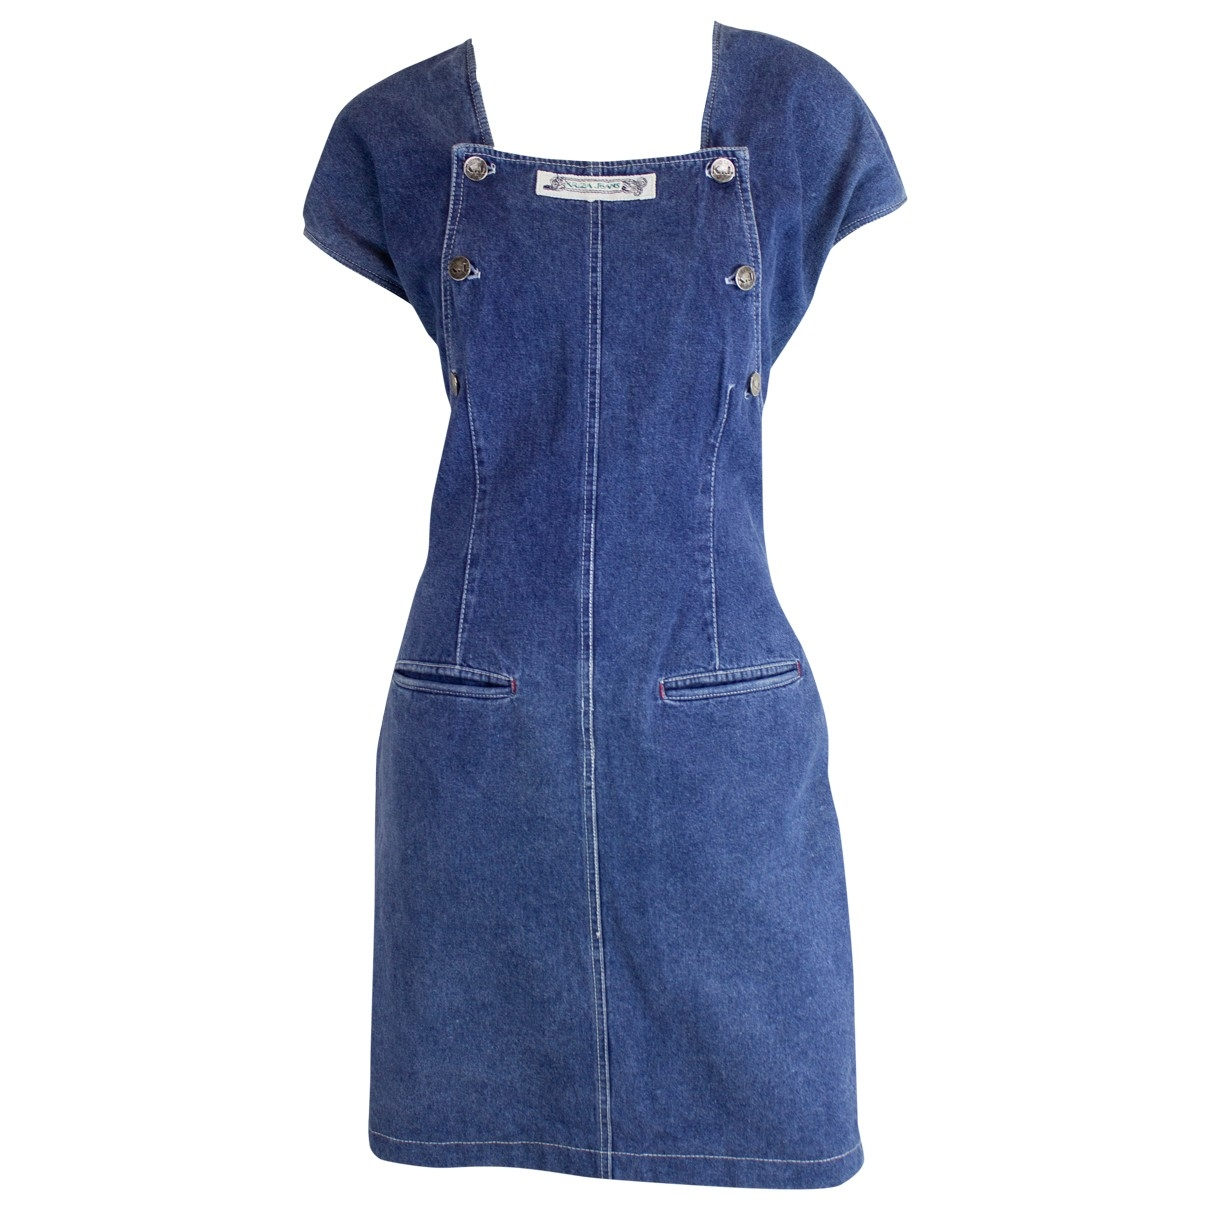 Krizia \N Blue Denim - Jeans dress for Women 16 UK